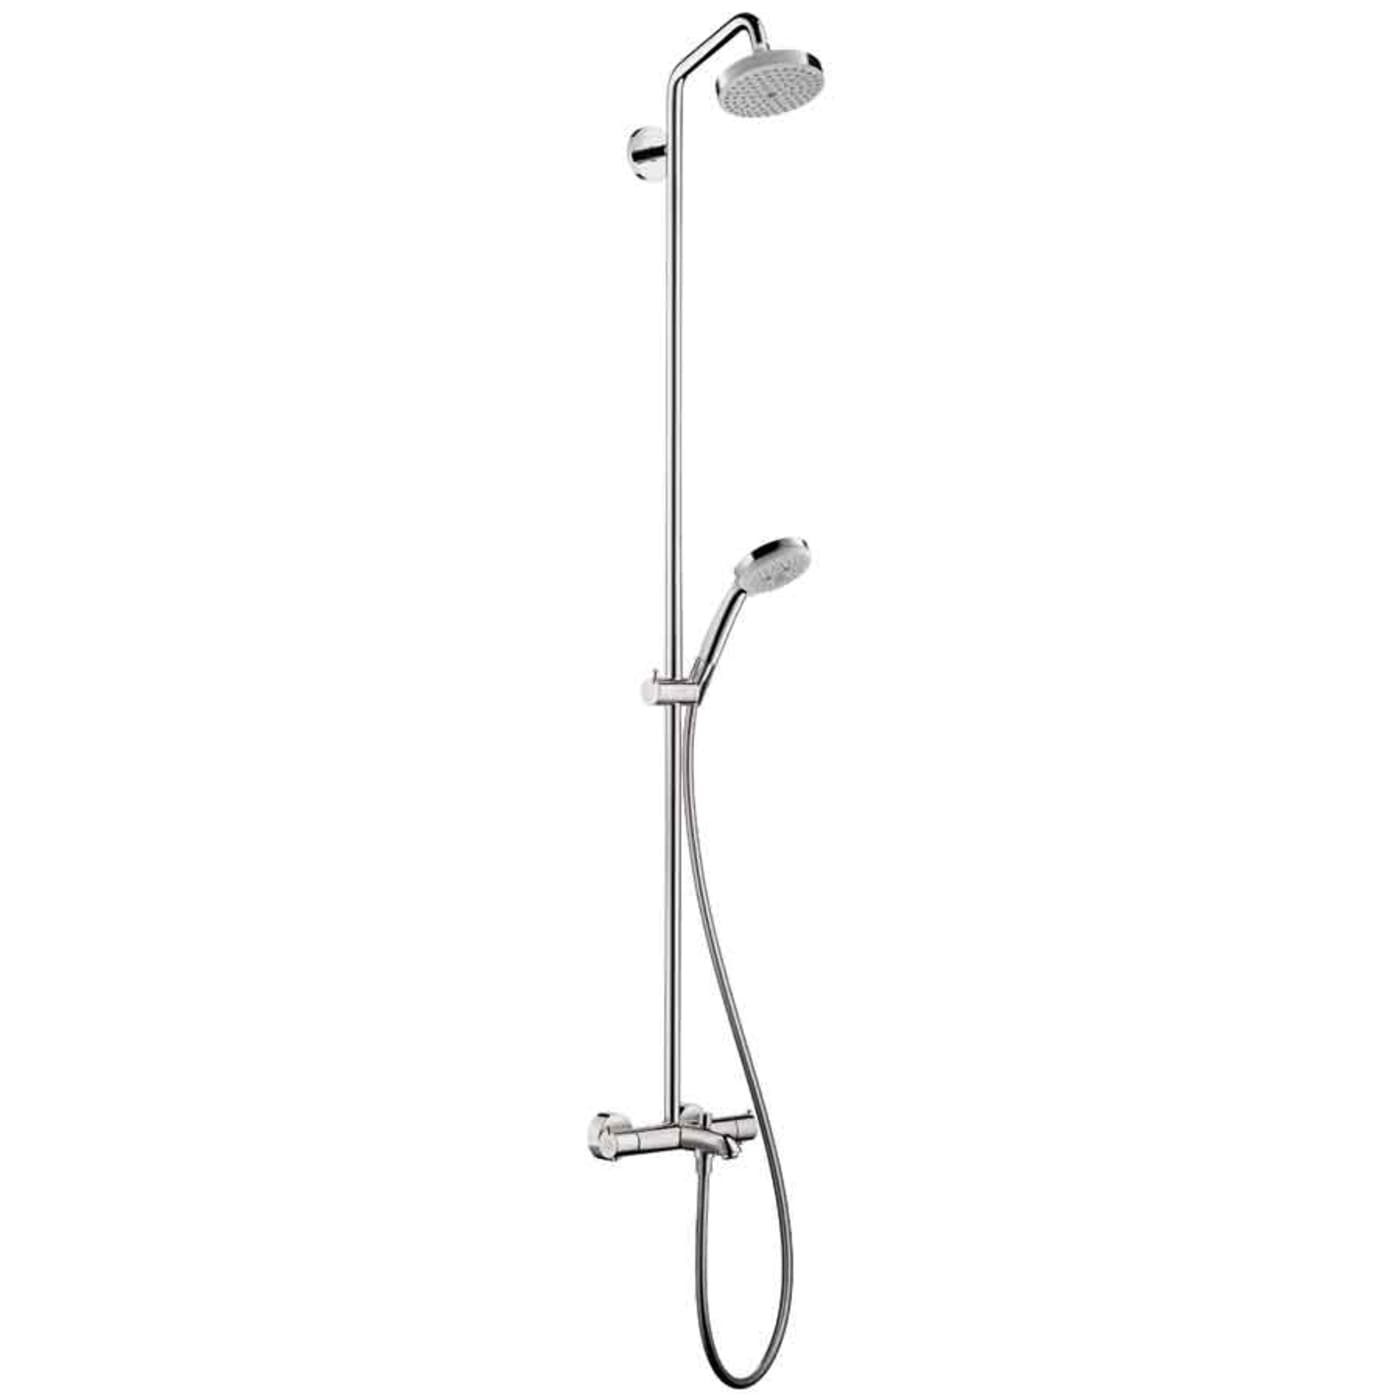 Hansgrohe Croma Shower System 27143001 Chrome - Goedekers.com